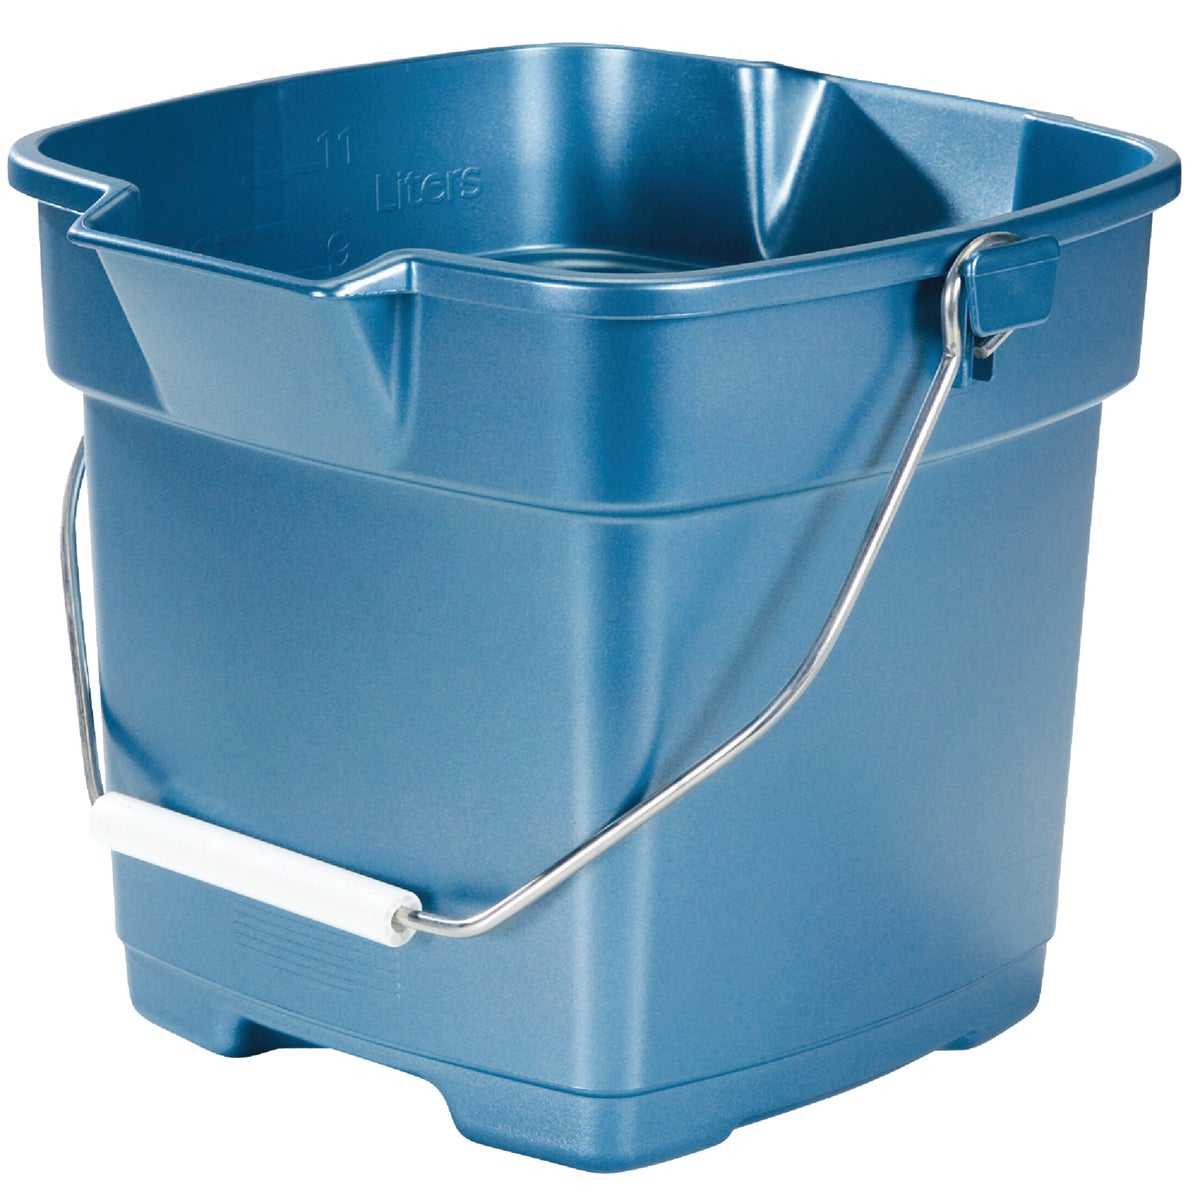 12QT BLUE BUCKET - FG296400ROYBL by Rubbermaid Home